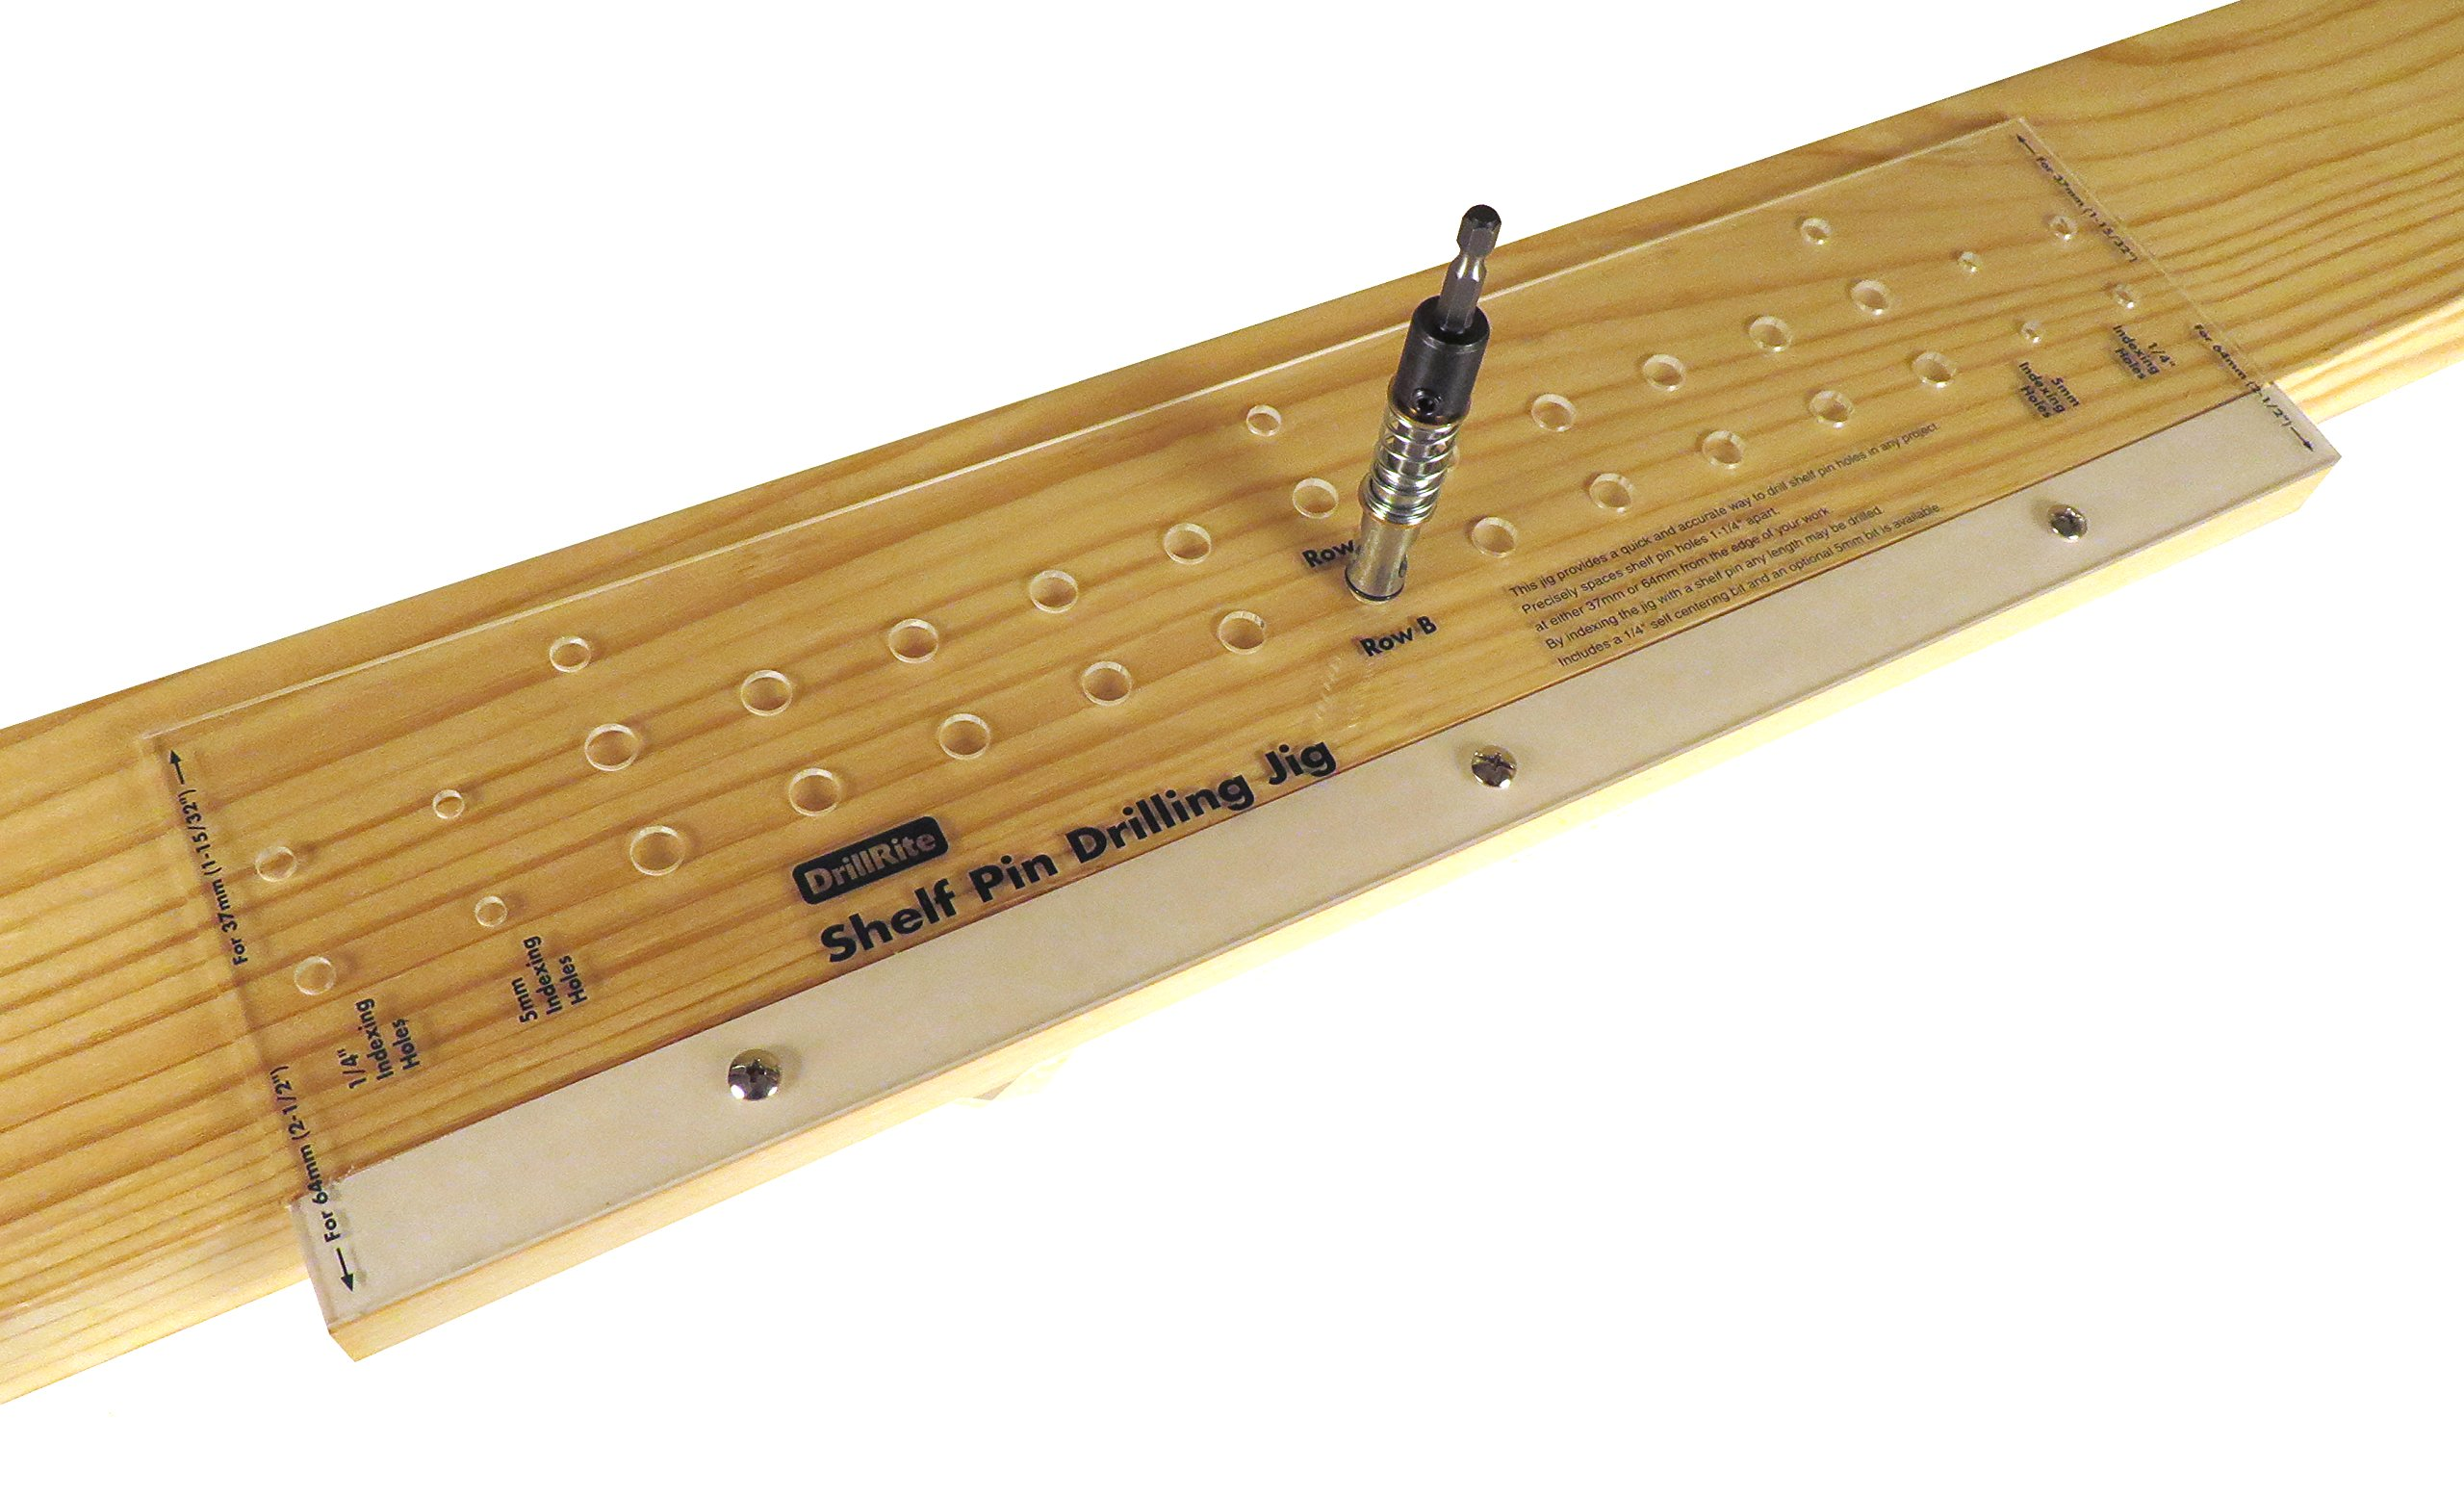 "Shelf Pin Drilling Jig for Adjustable Shelves with 1/4'' Self Centering Bit 11 Holes 19"" long SPG"